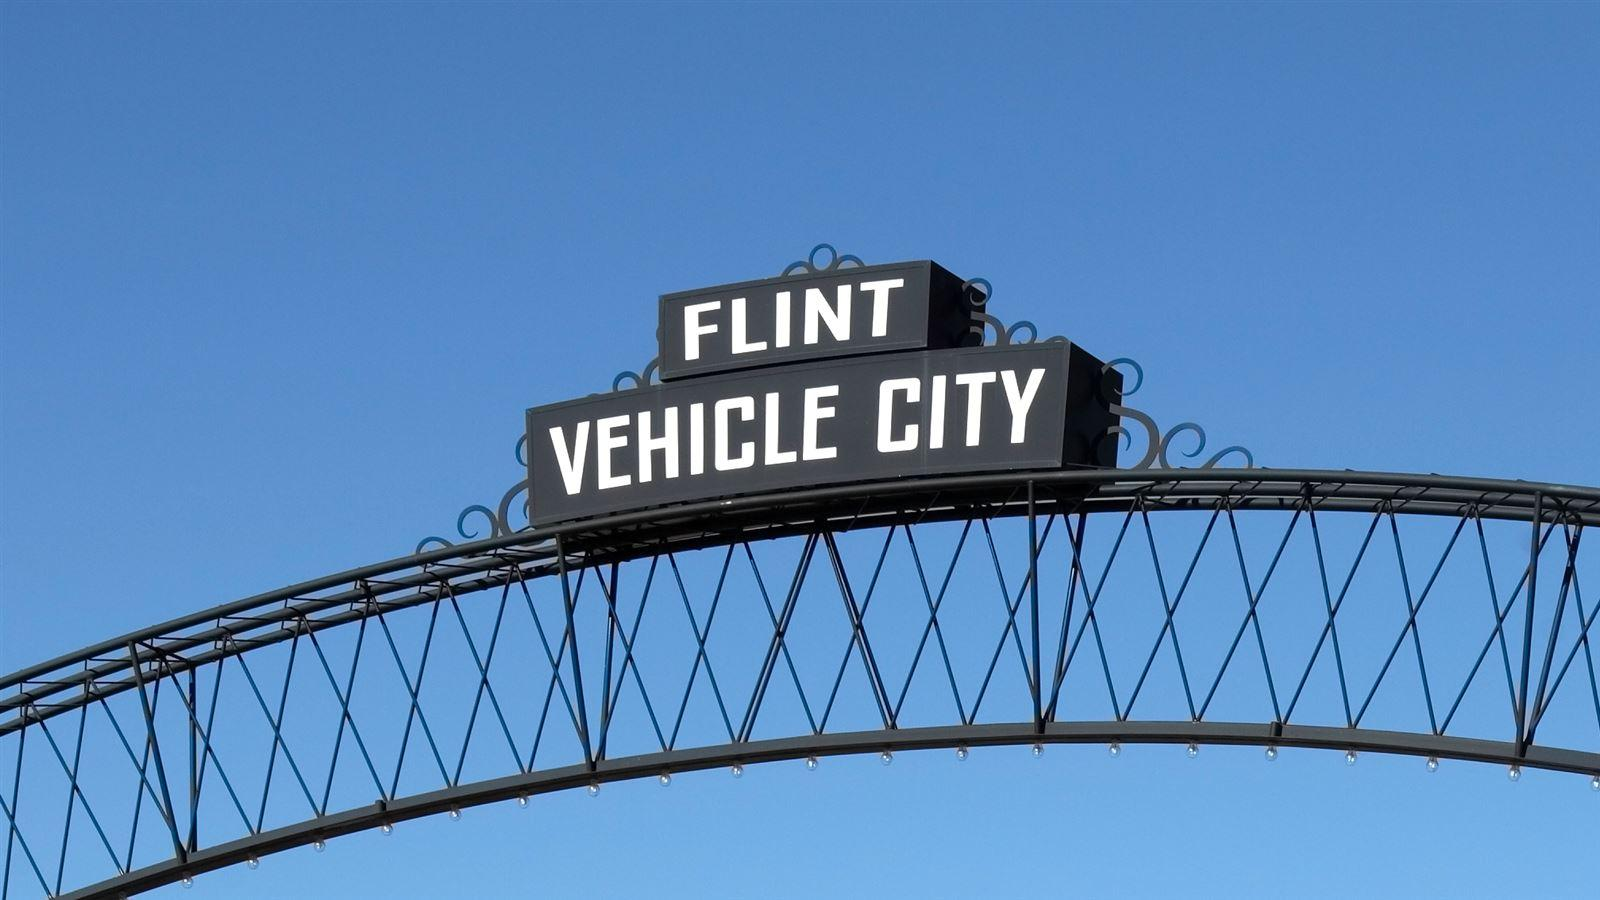 Helping the city of flint find the best way forward cdm for Finding subcontracting opportunities